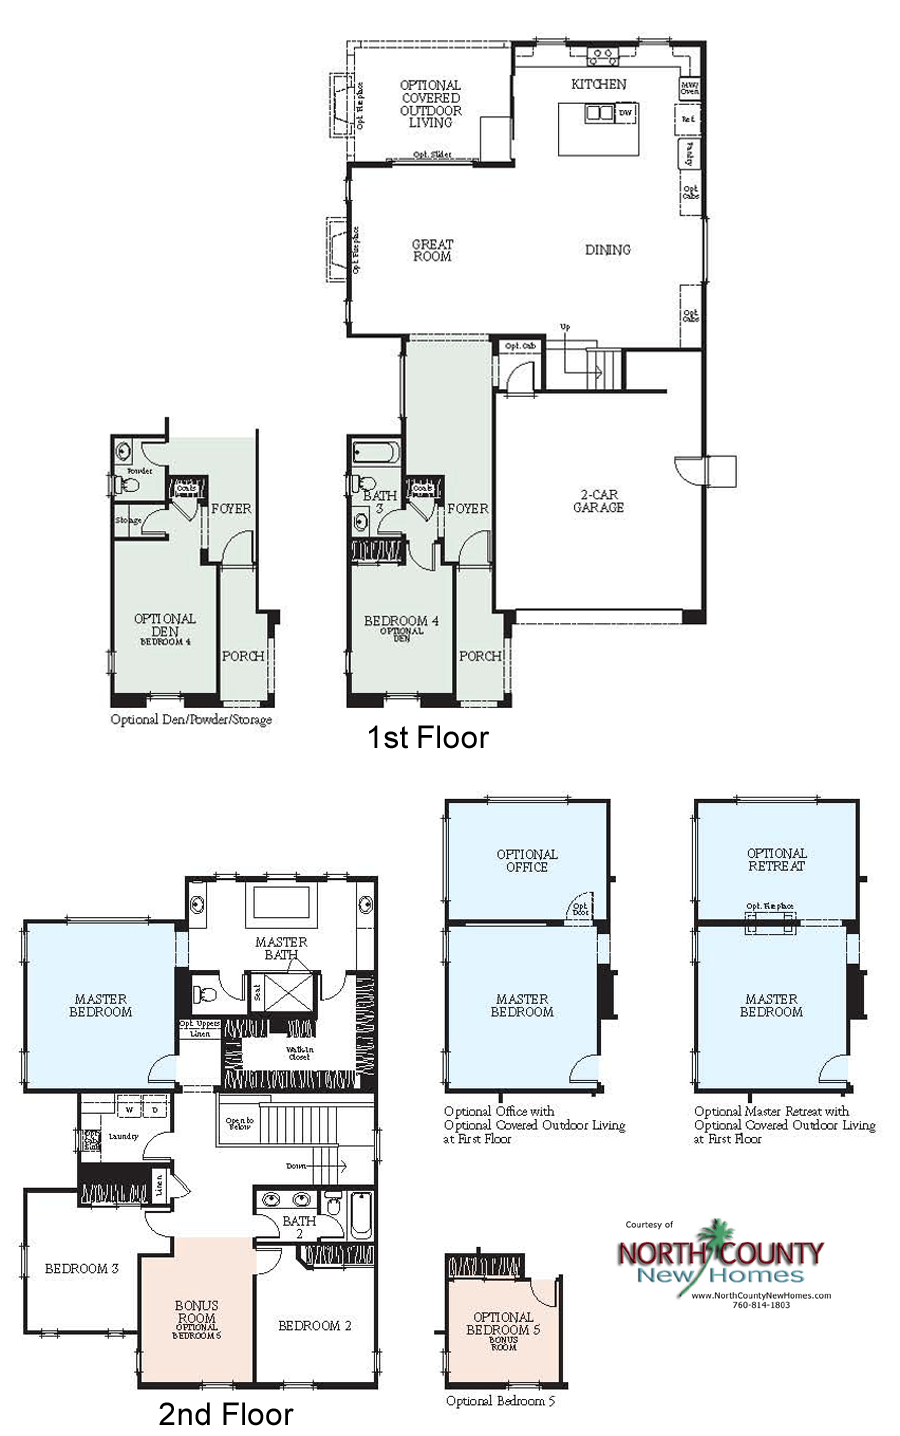 westerly at rancho tesoro new home floor plans - north county new